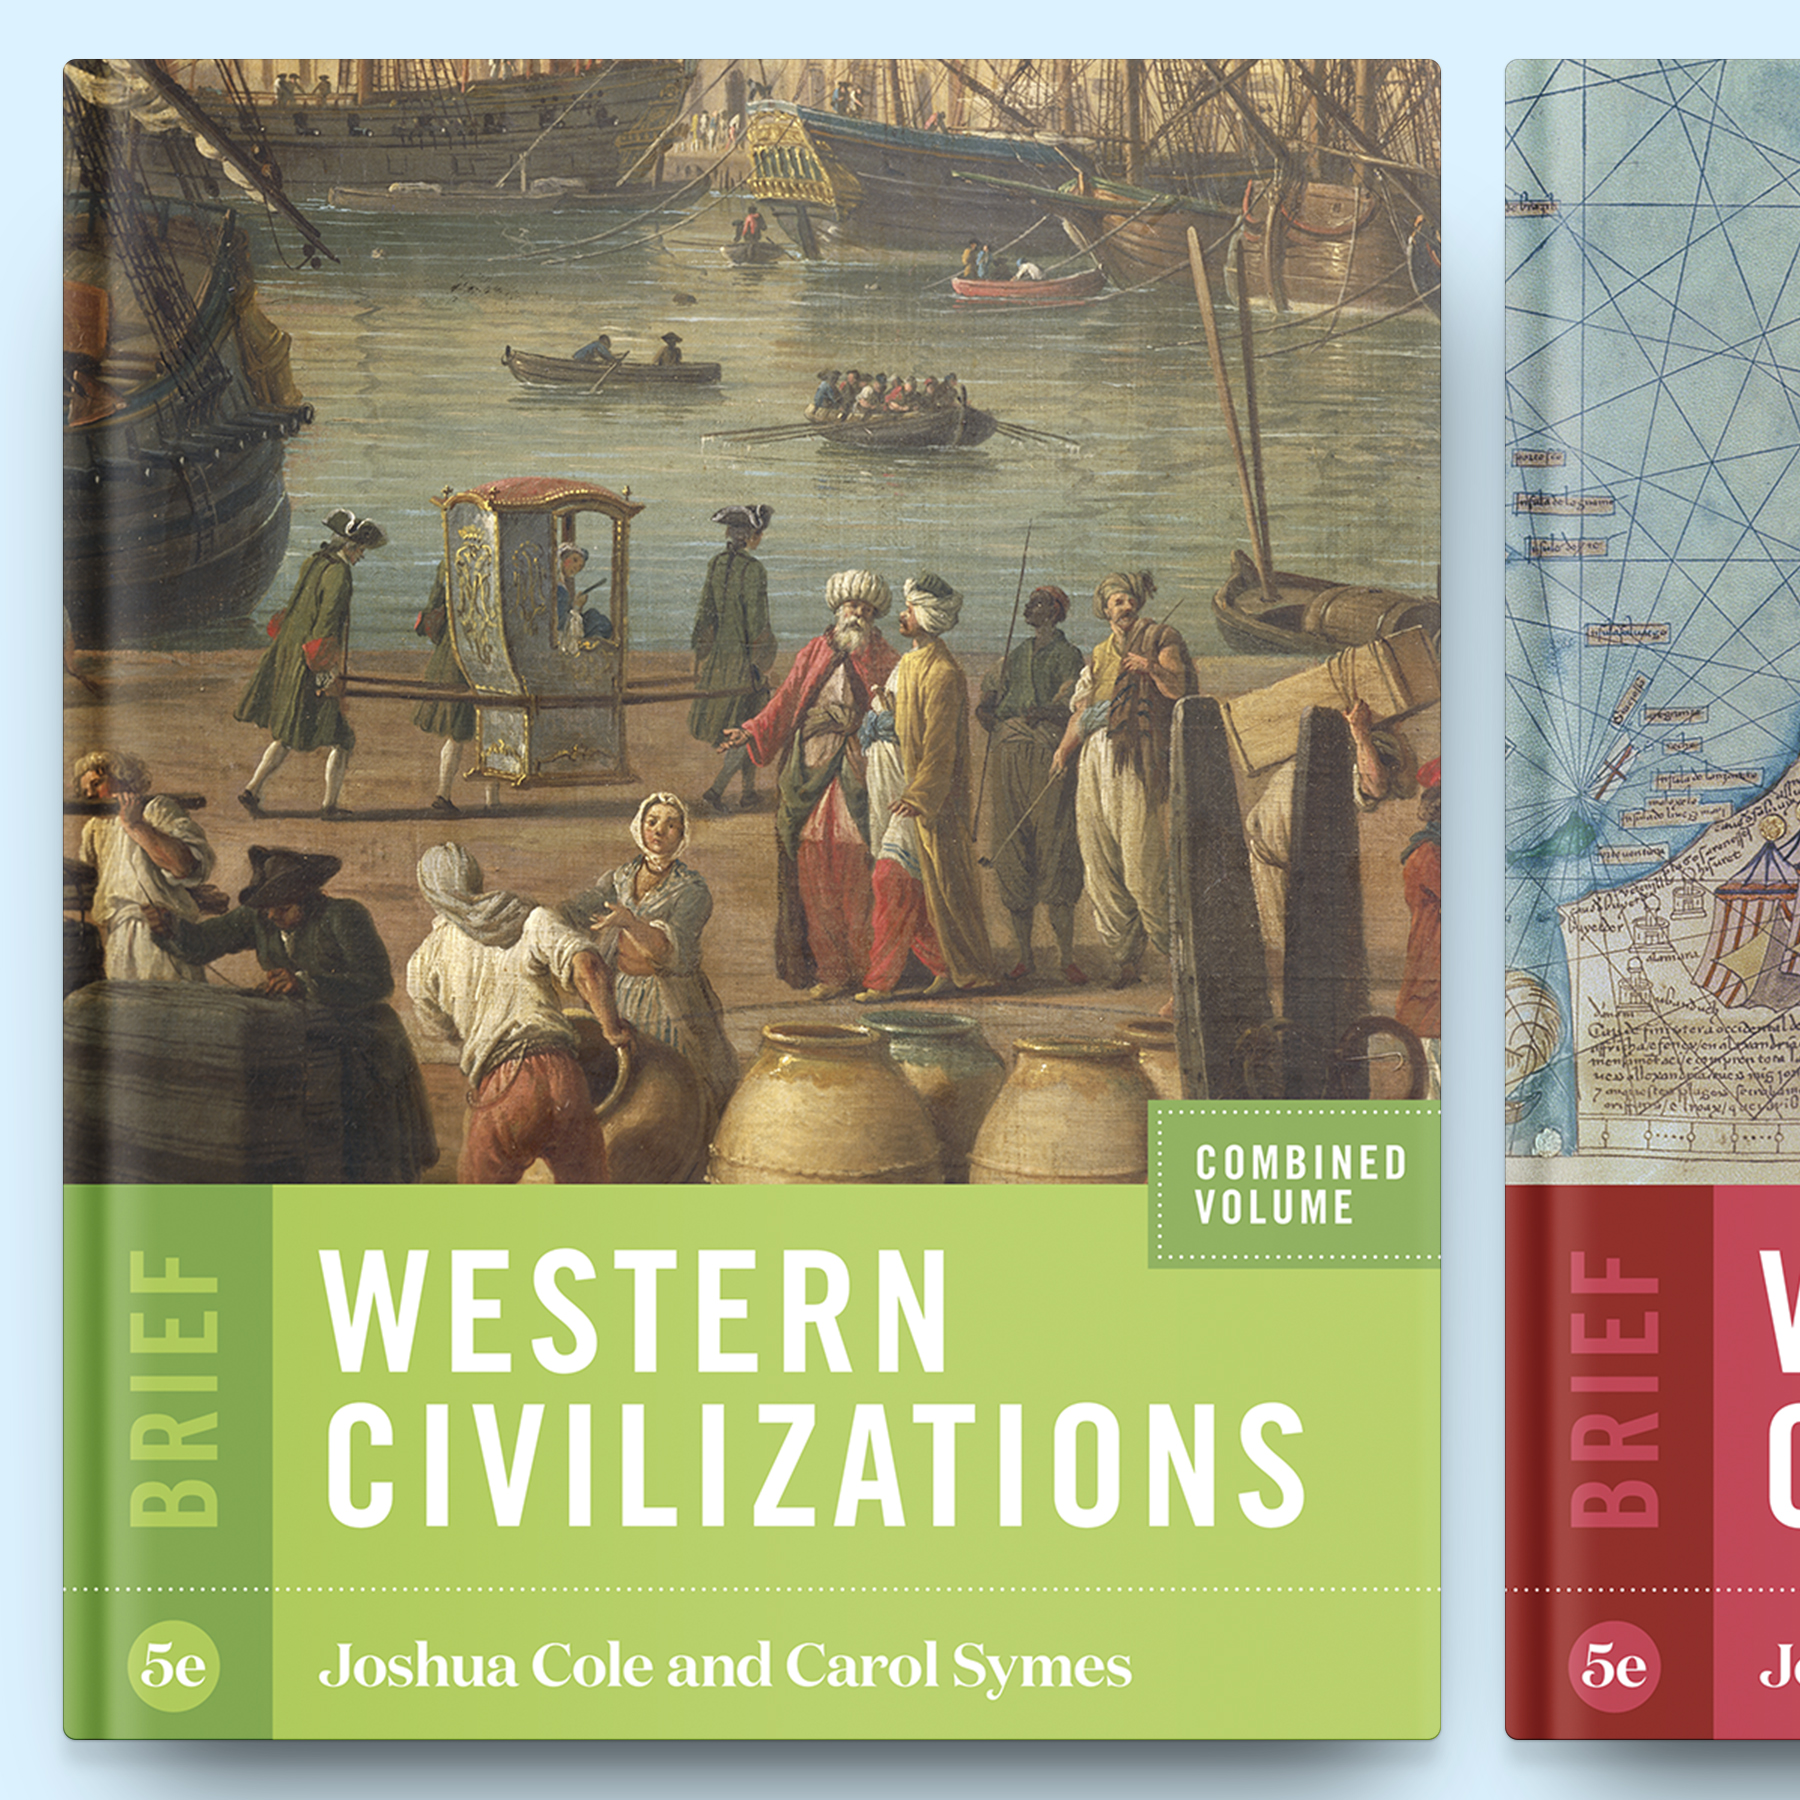 Western Civilizations Textbook  See More →